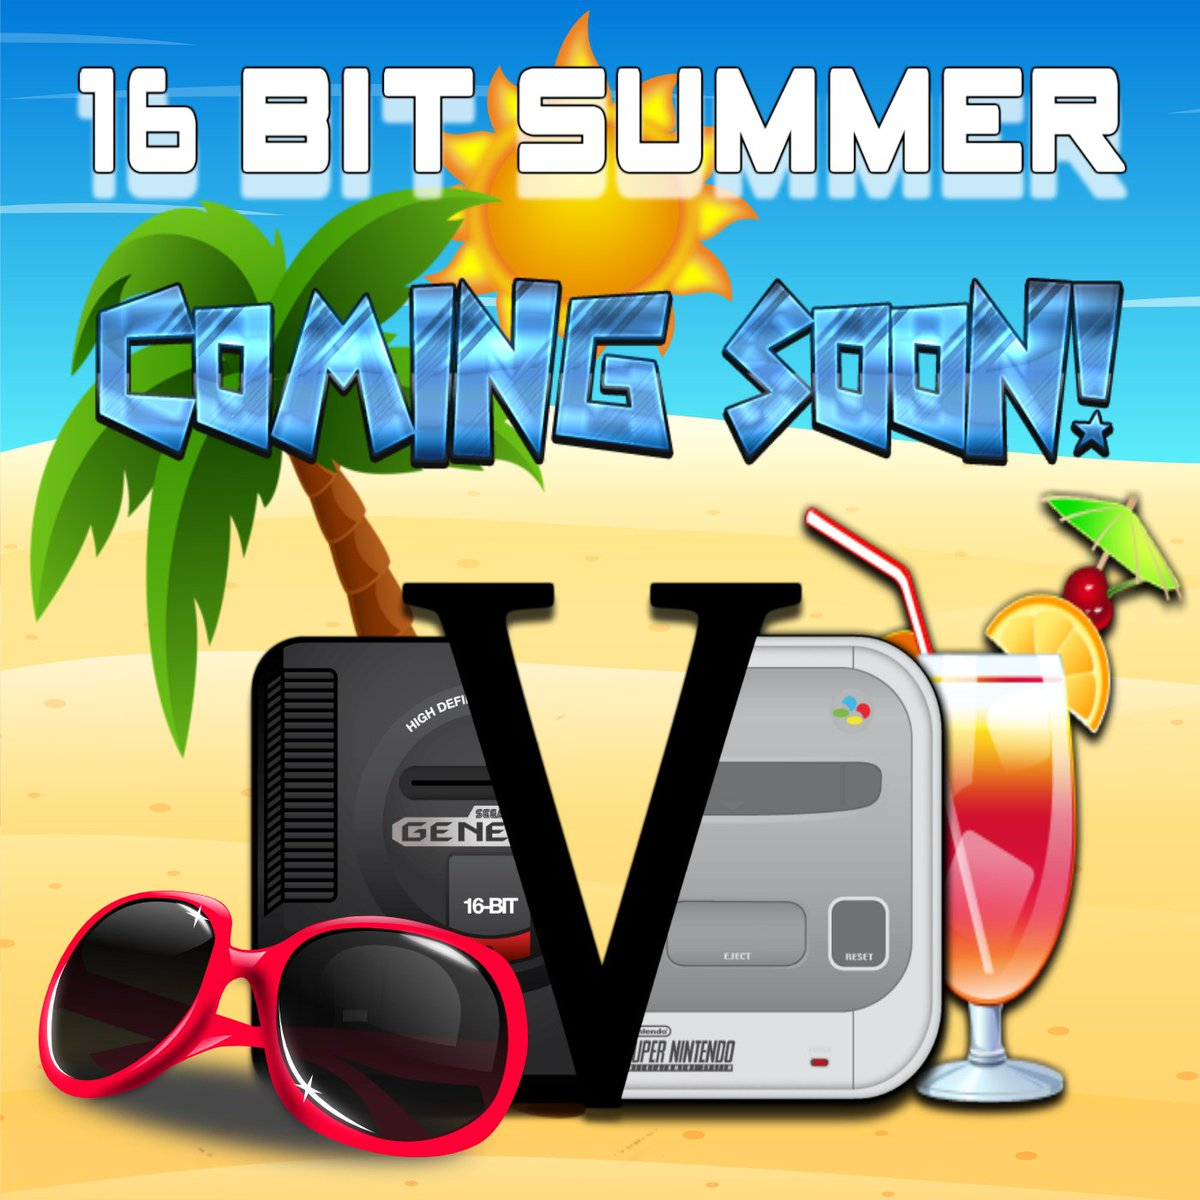 New remixes heading your way soon! #RETROGAMING #GamersUnite #SEGA #Nintendo #Summer #VGM<br>http://pic.twitter.com/BCCe1SAup5